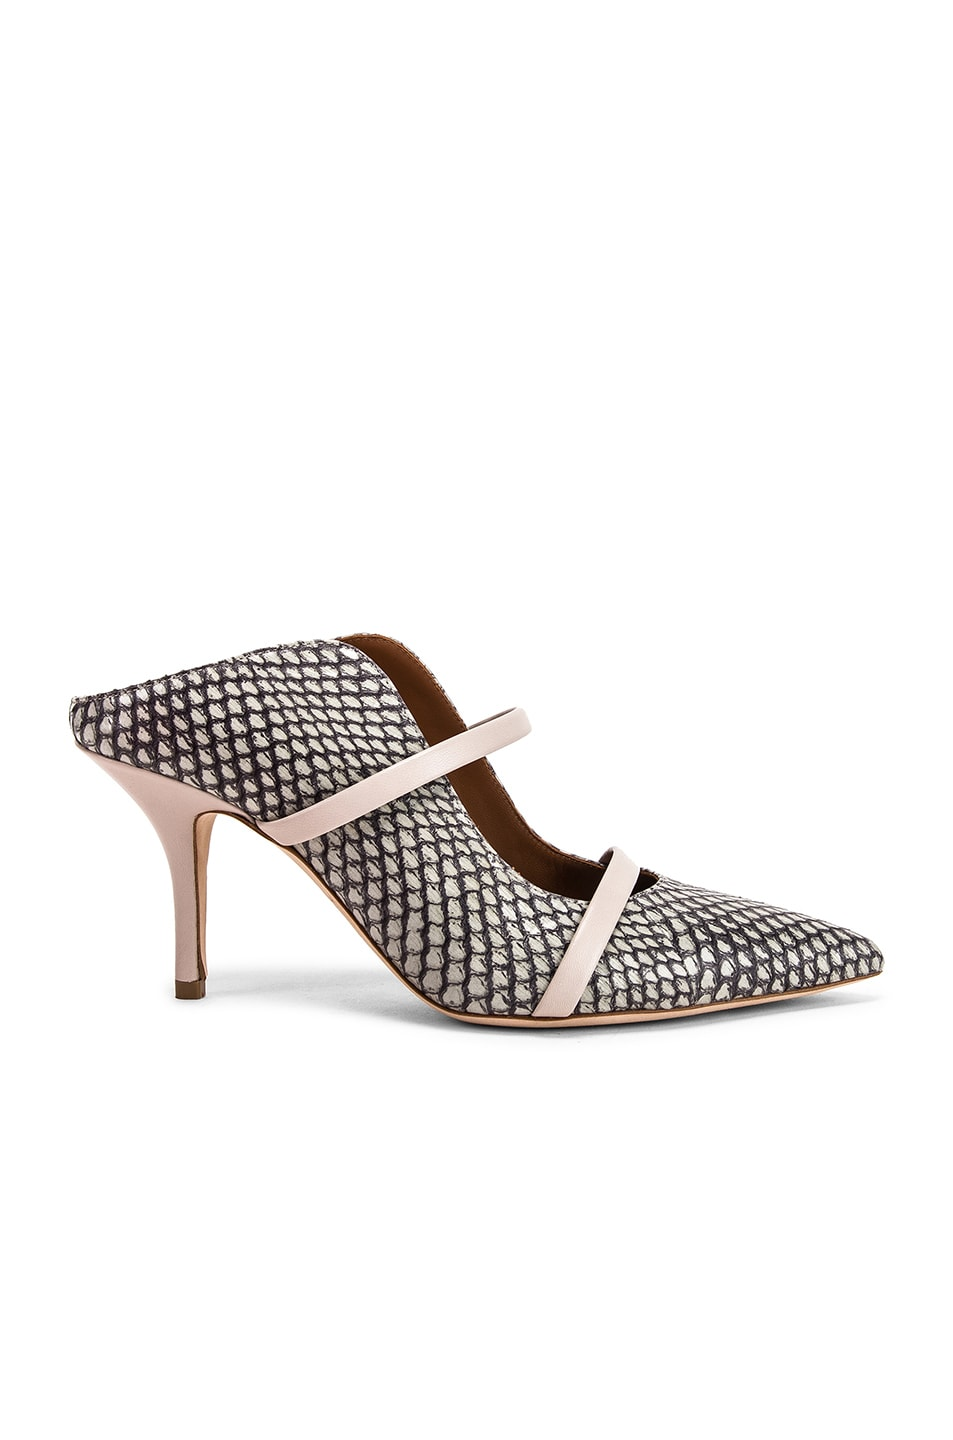 Image 1 of Malone Souliers Maureen MS 70 Heel in Peppermint & Grey